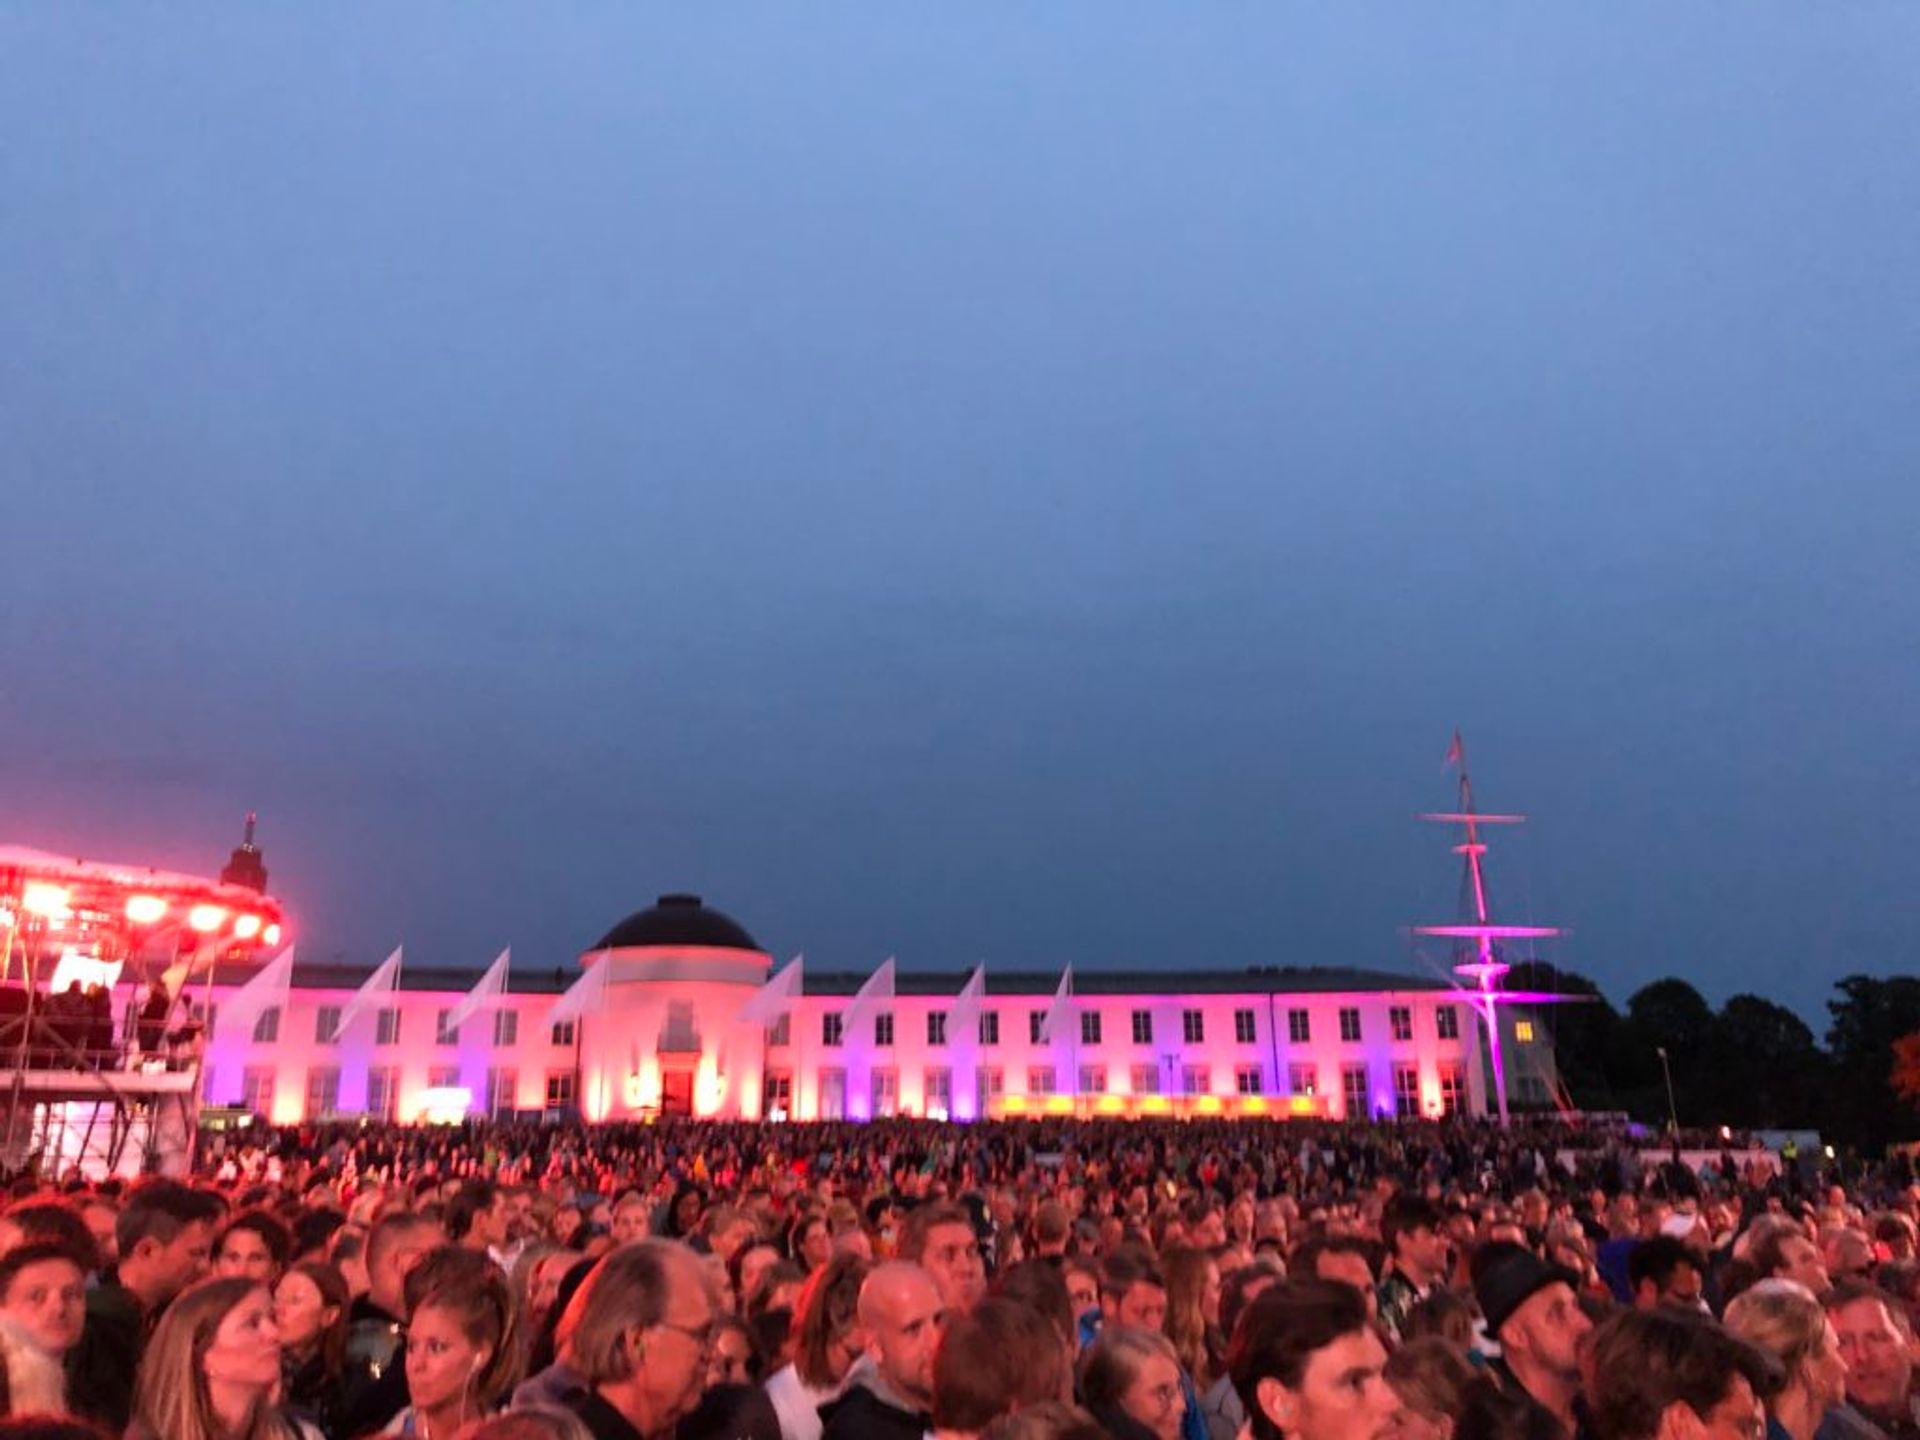 A large crowd at the Robyn concert.